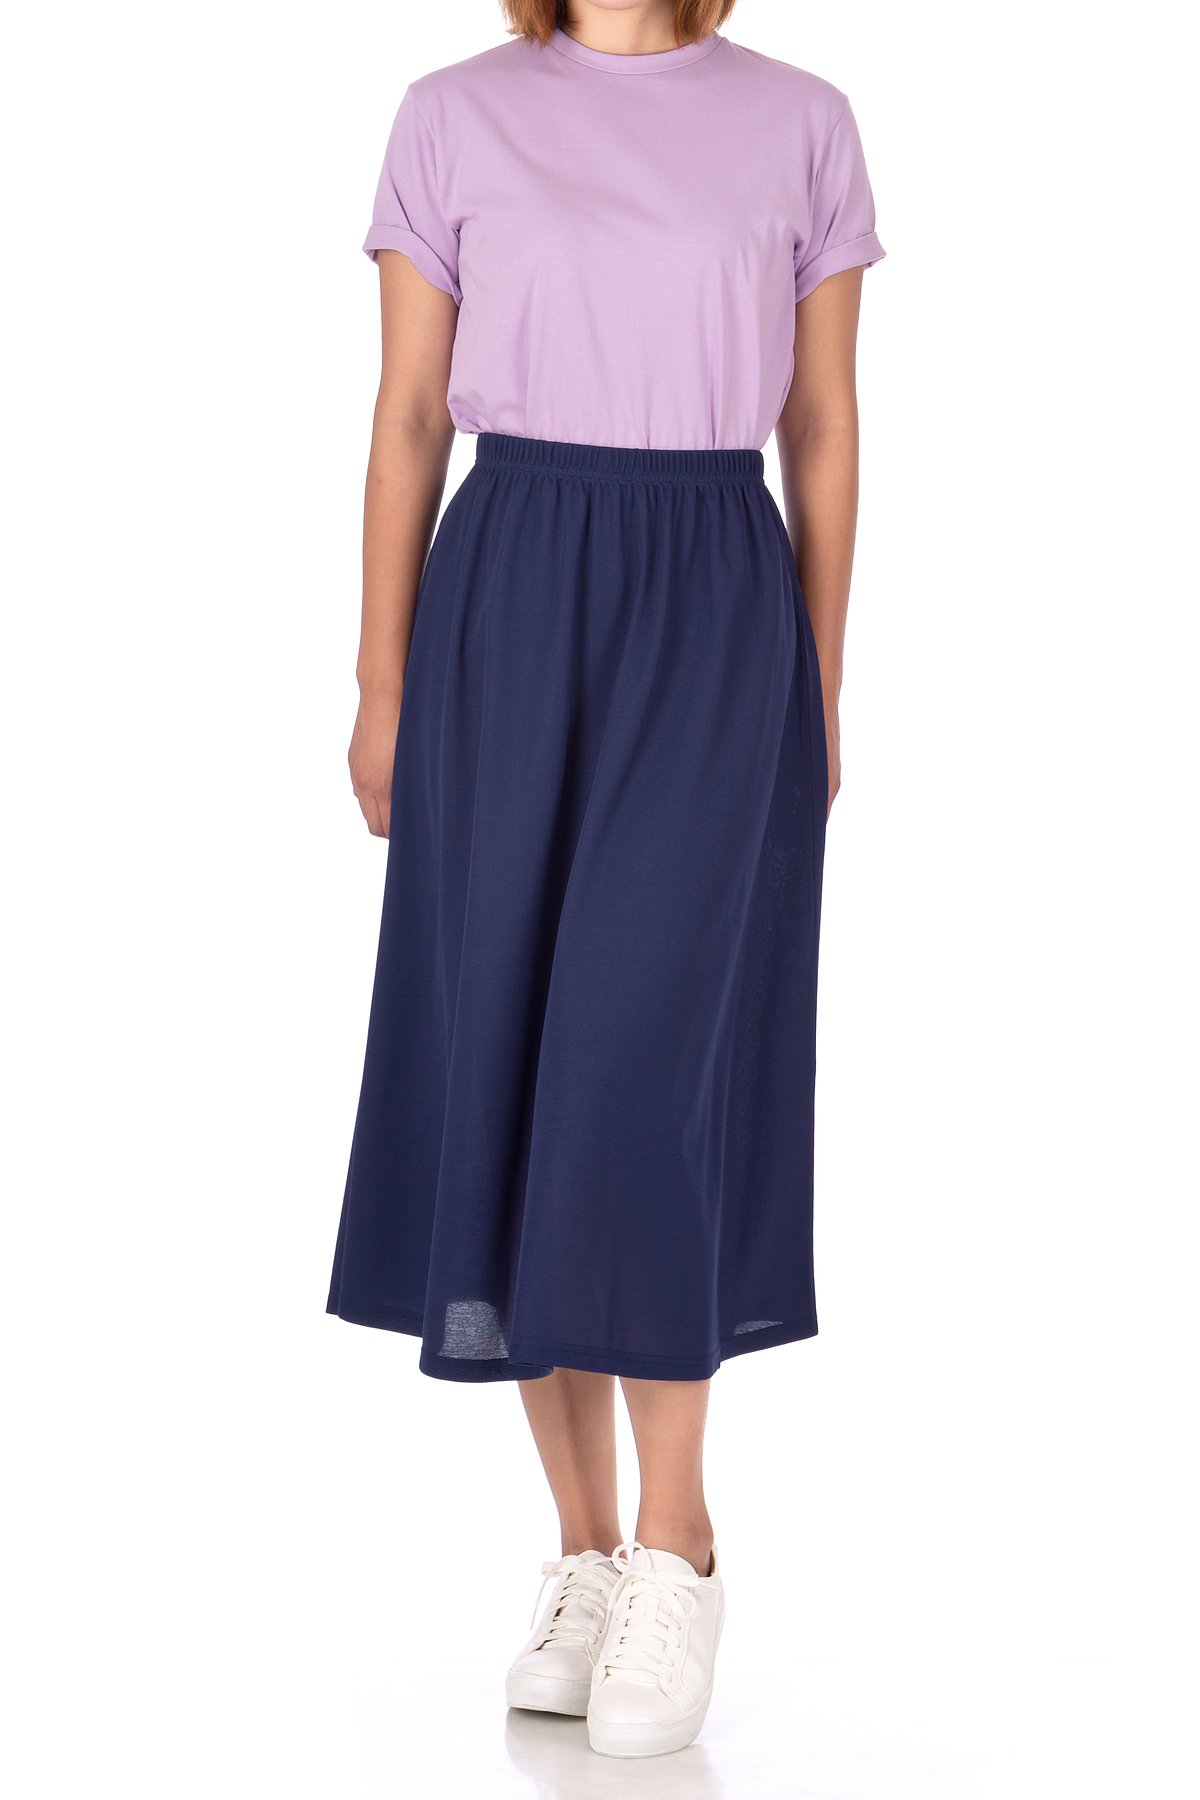 Brilliant Elastic Waist Full Flared Long Skirt Navy 02 1